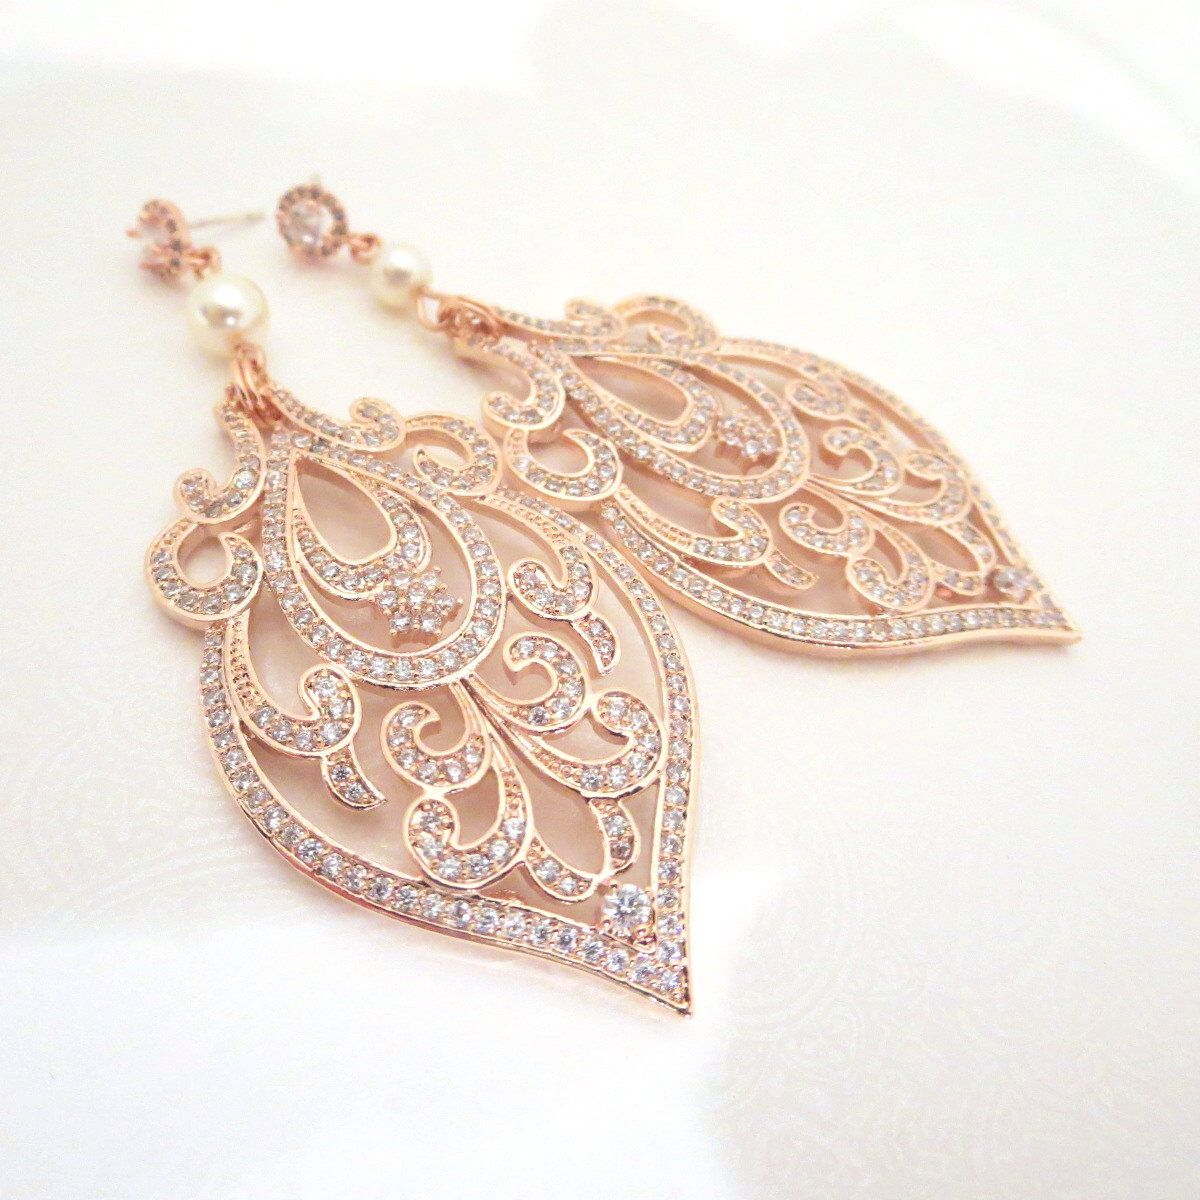 Rose gold bridal earrings art deco wedding earrings rose gold rose gold bridal earrings art deco wedding earrings rose gold crystal earrings bridal arubaitofo Image collections